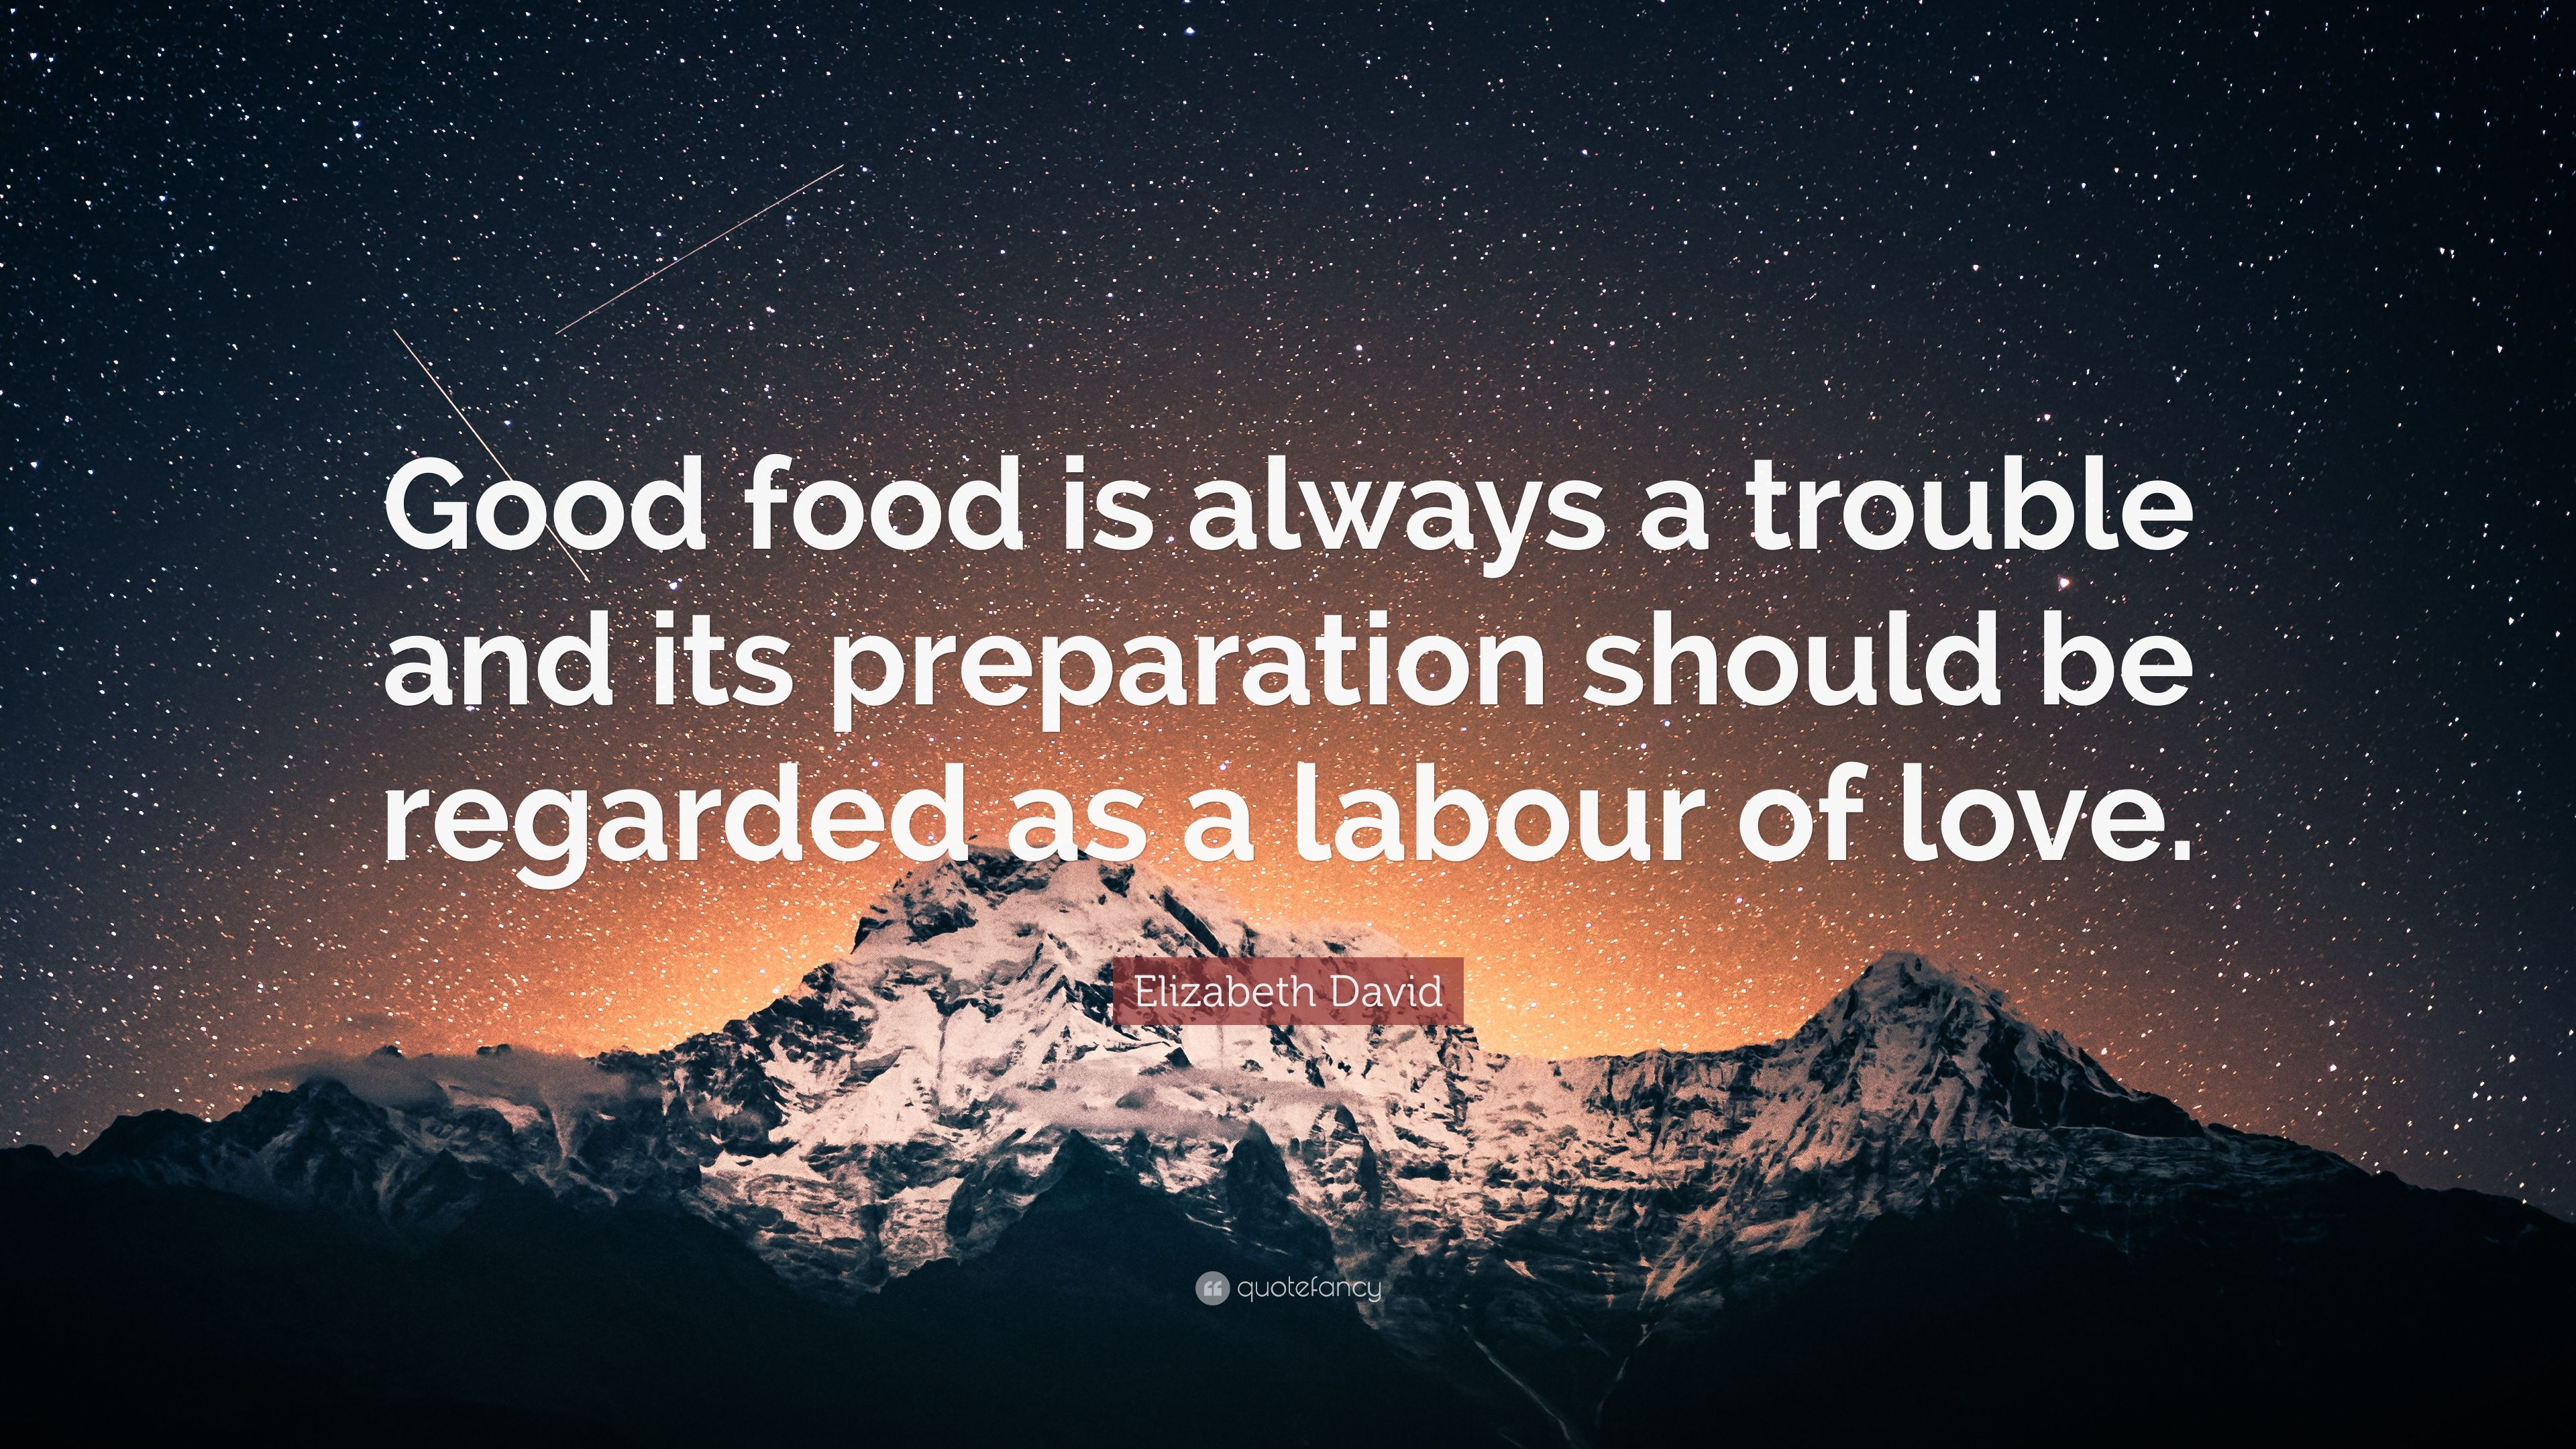 4581183-Elizabeth-David-Quote-Good-food-is-always-a-trouble-and-its.jpg